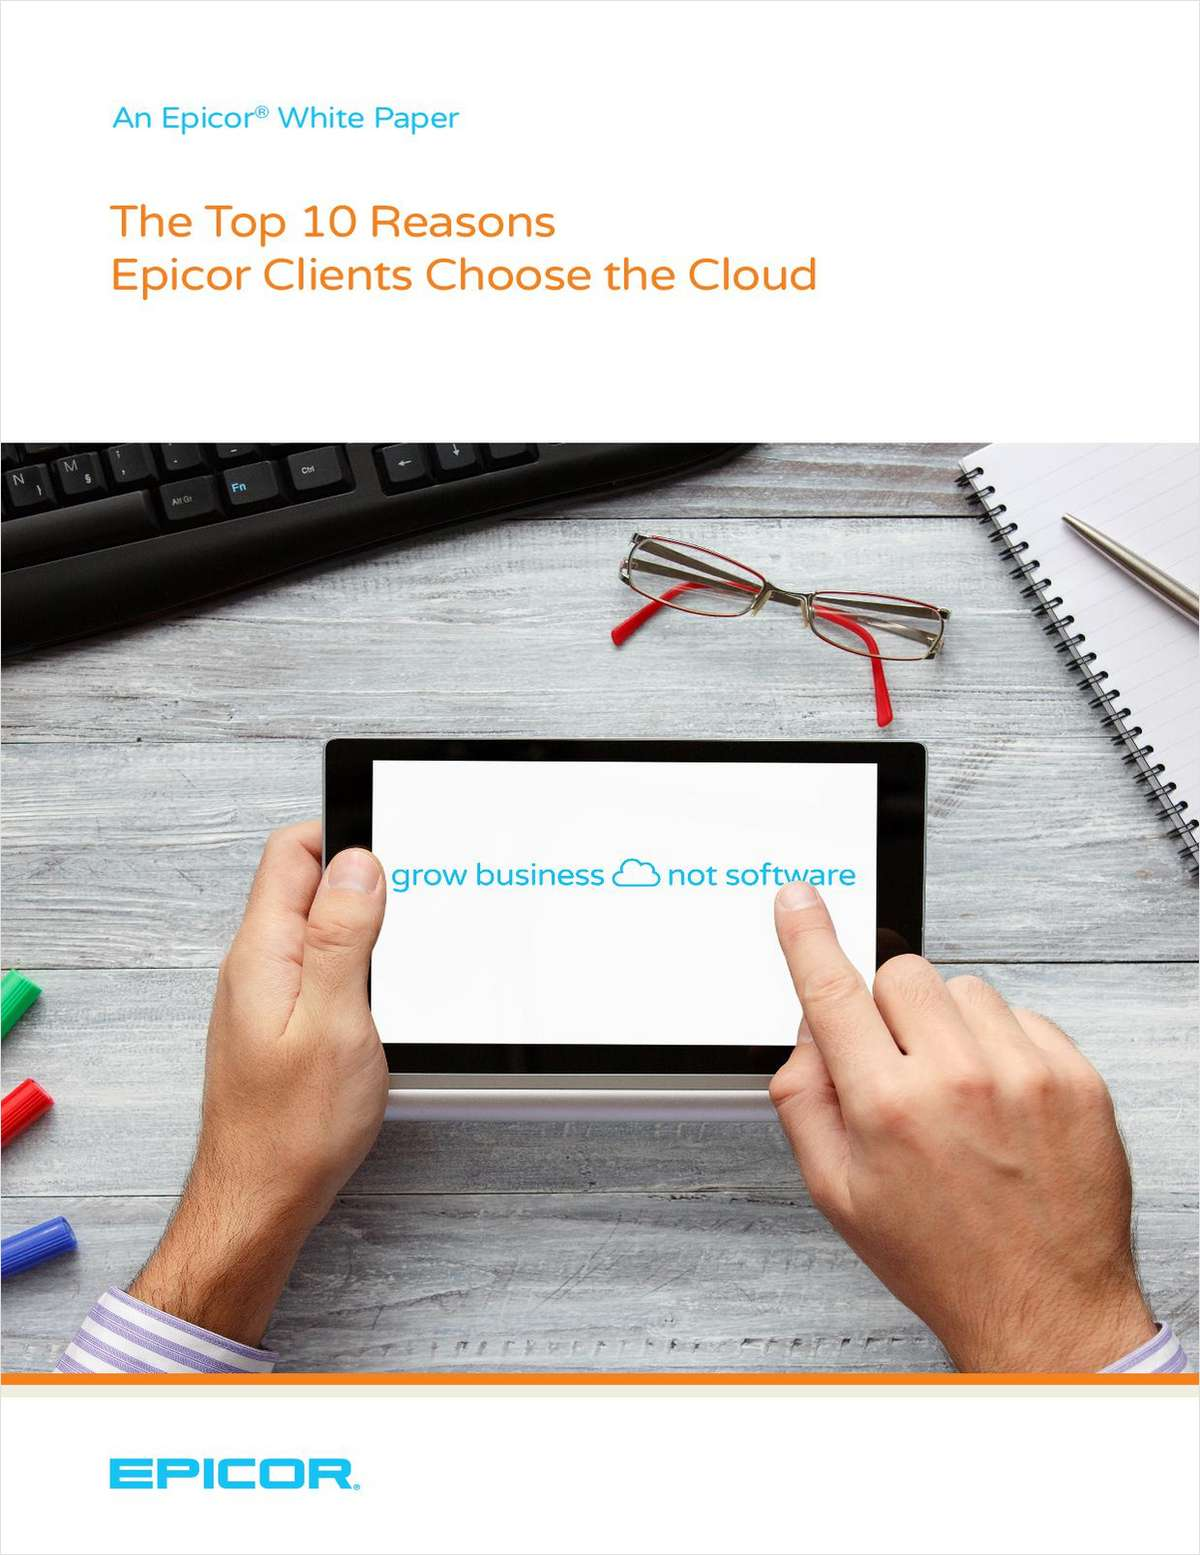 The Top 10 Reasons Epicor Clients Choose the Cloud